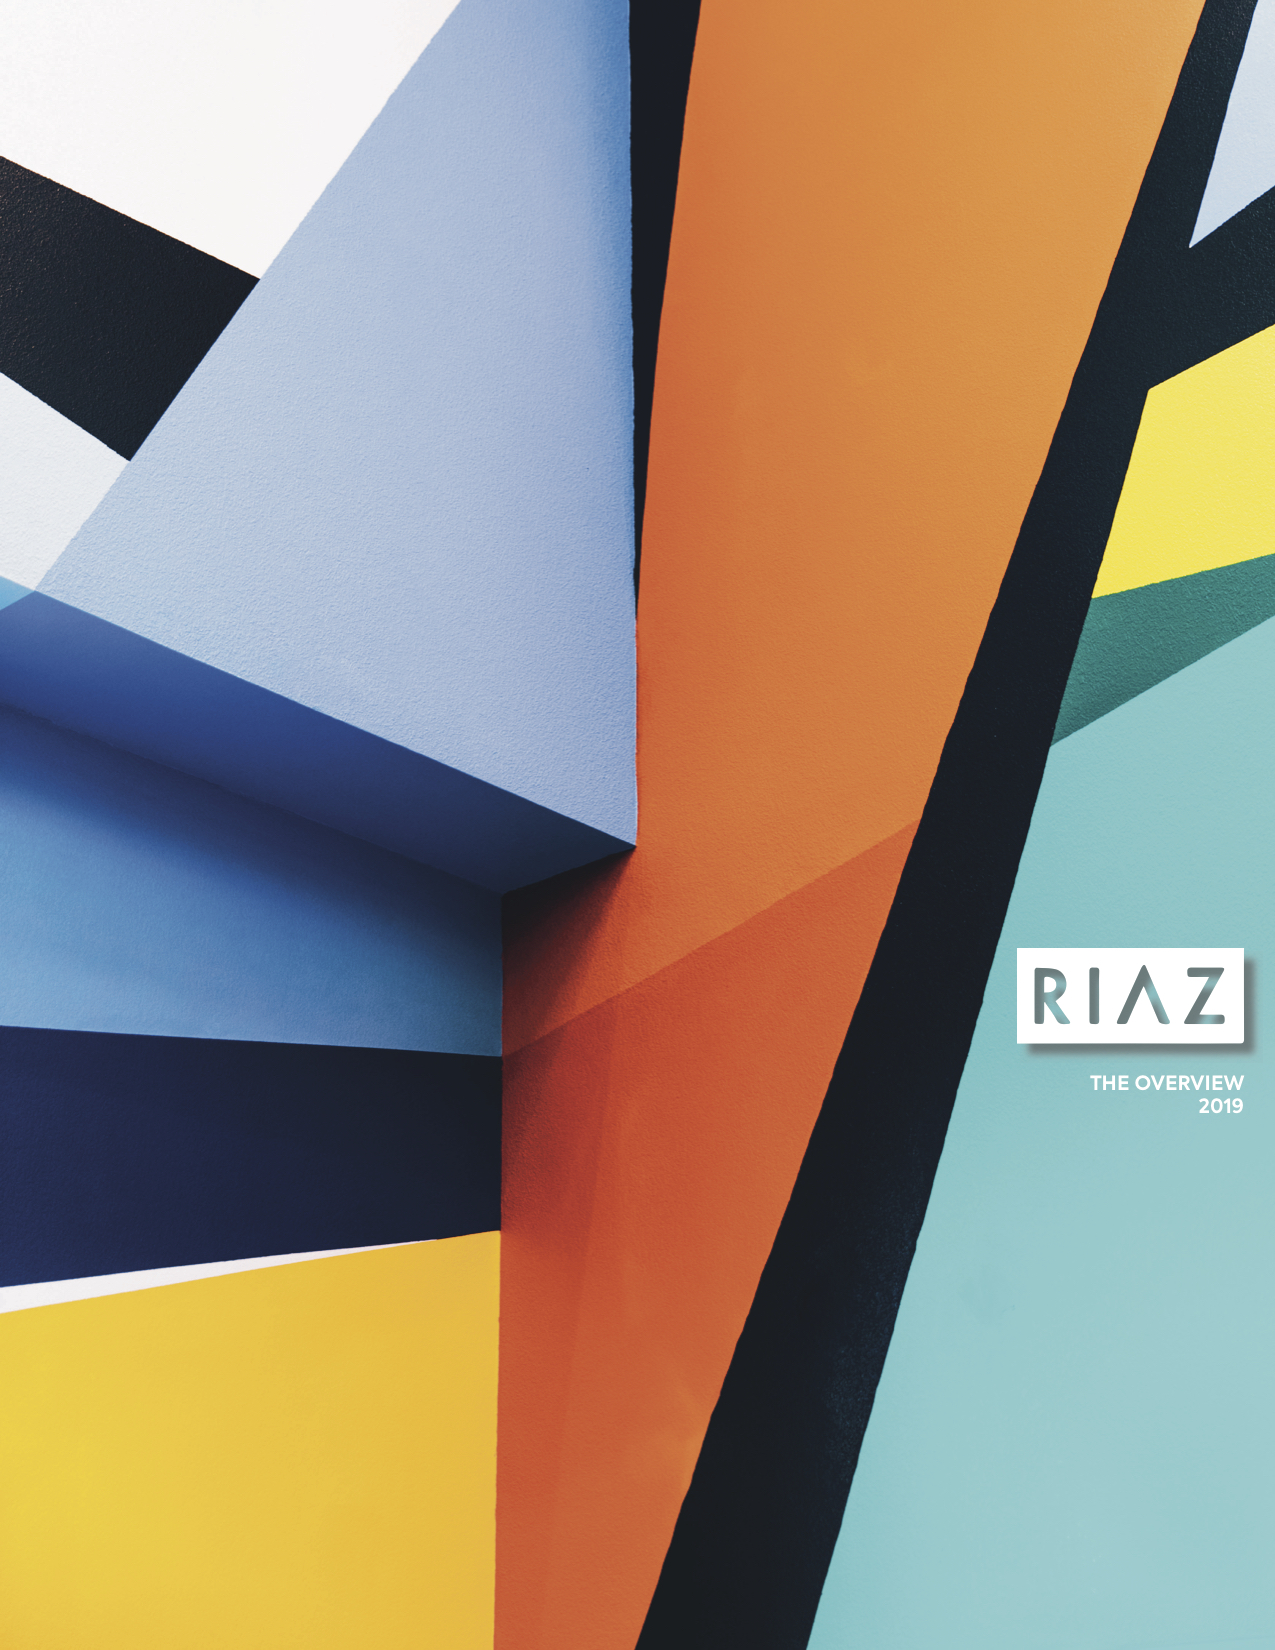 Riaz magazine issue 2019_ (8.5x11) 4.jpg